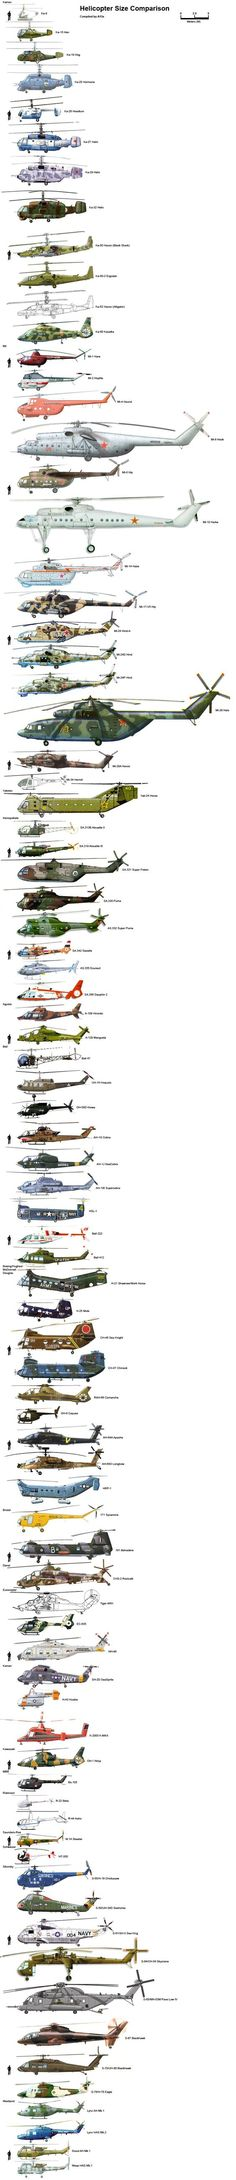 comparaison-taille-helicoptere - La boite verte (:Tap The LINK NOW:) We provide the best essential unique equipment and gear for active duty American patriotic military branches, well strategic selected.We love tactical American gear Military Helicopter, Military Aircraft, Helicopter Cake, Helicopter Birthday, Helicopter Rotor, Military Weapons, War Machine, Military Vehicles, Air Force